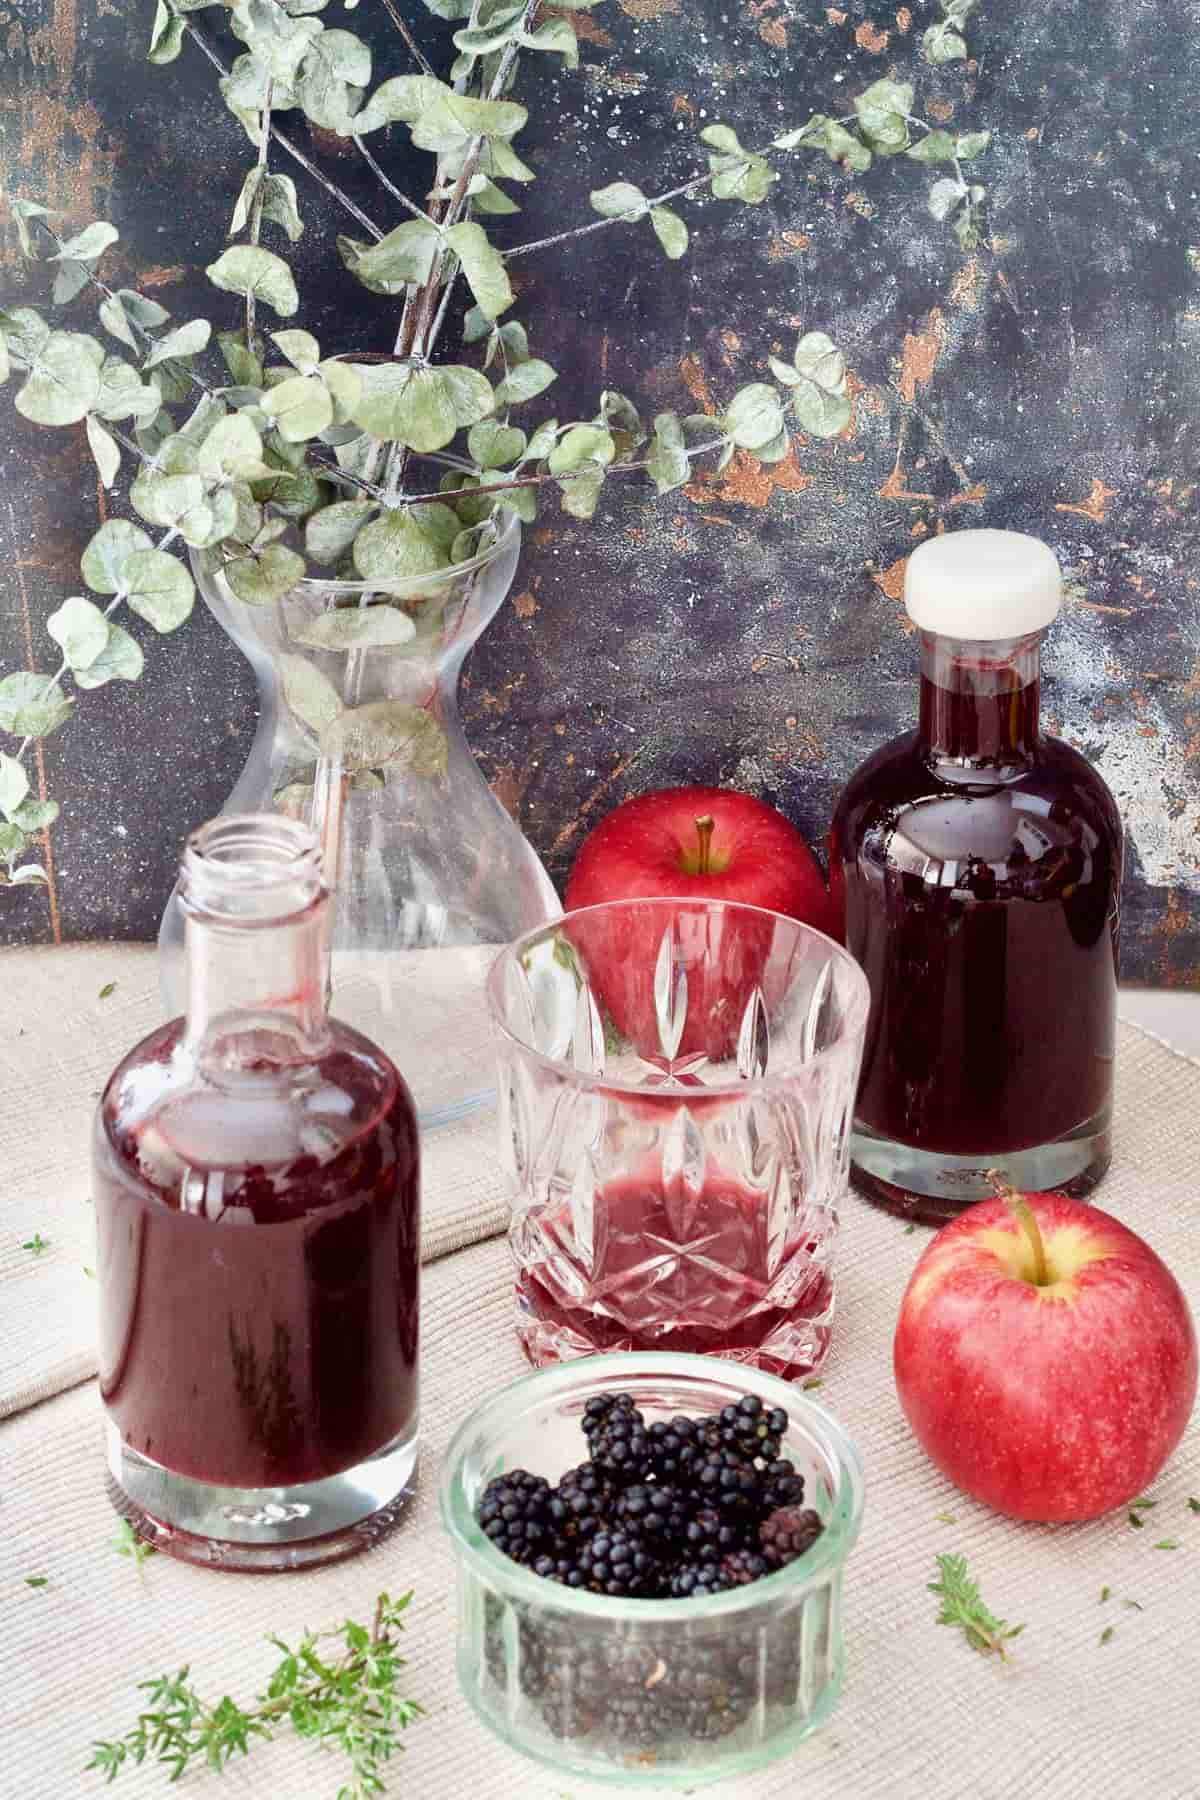 Bottles with vinegar, bowl with blackberries, tumbler and apples.